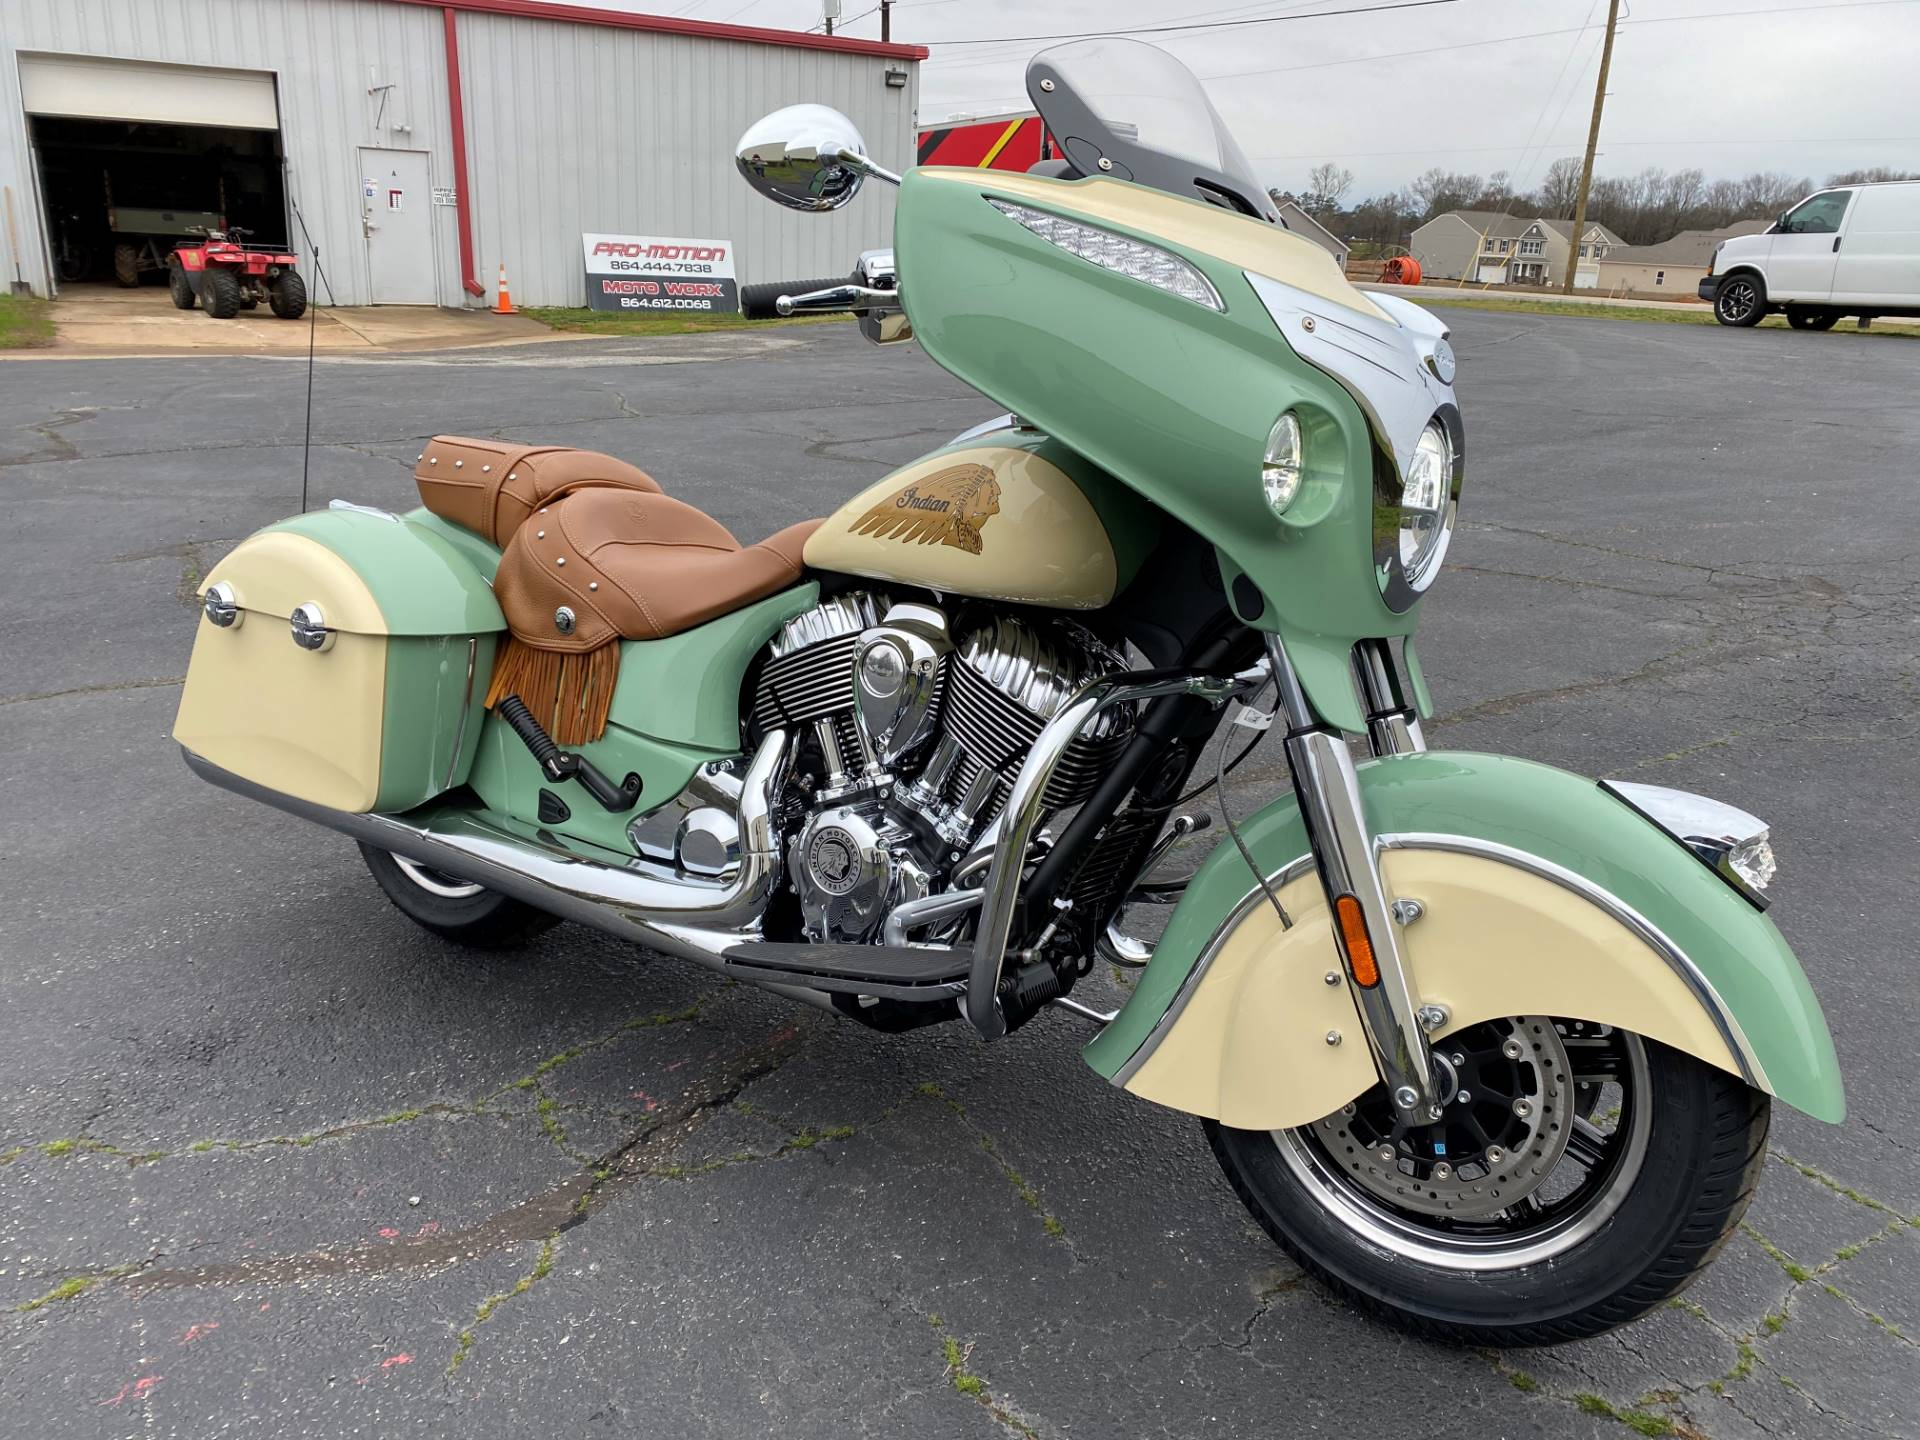 2020 Indian Chieftain Classic Icon Series - Photo 16